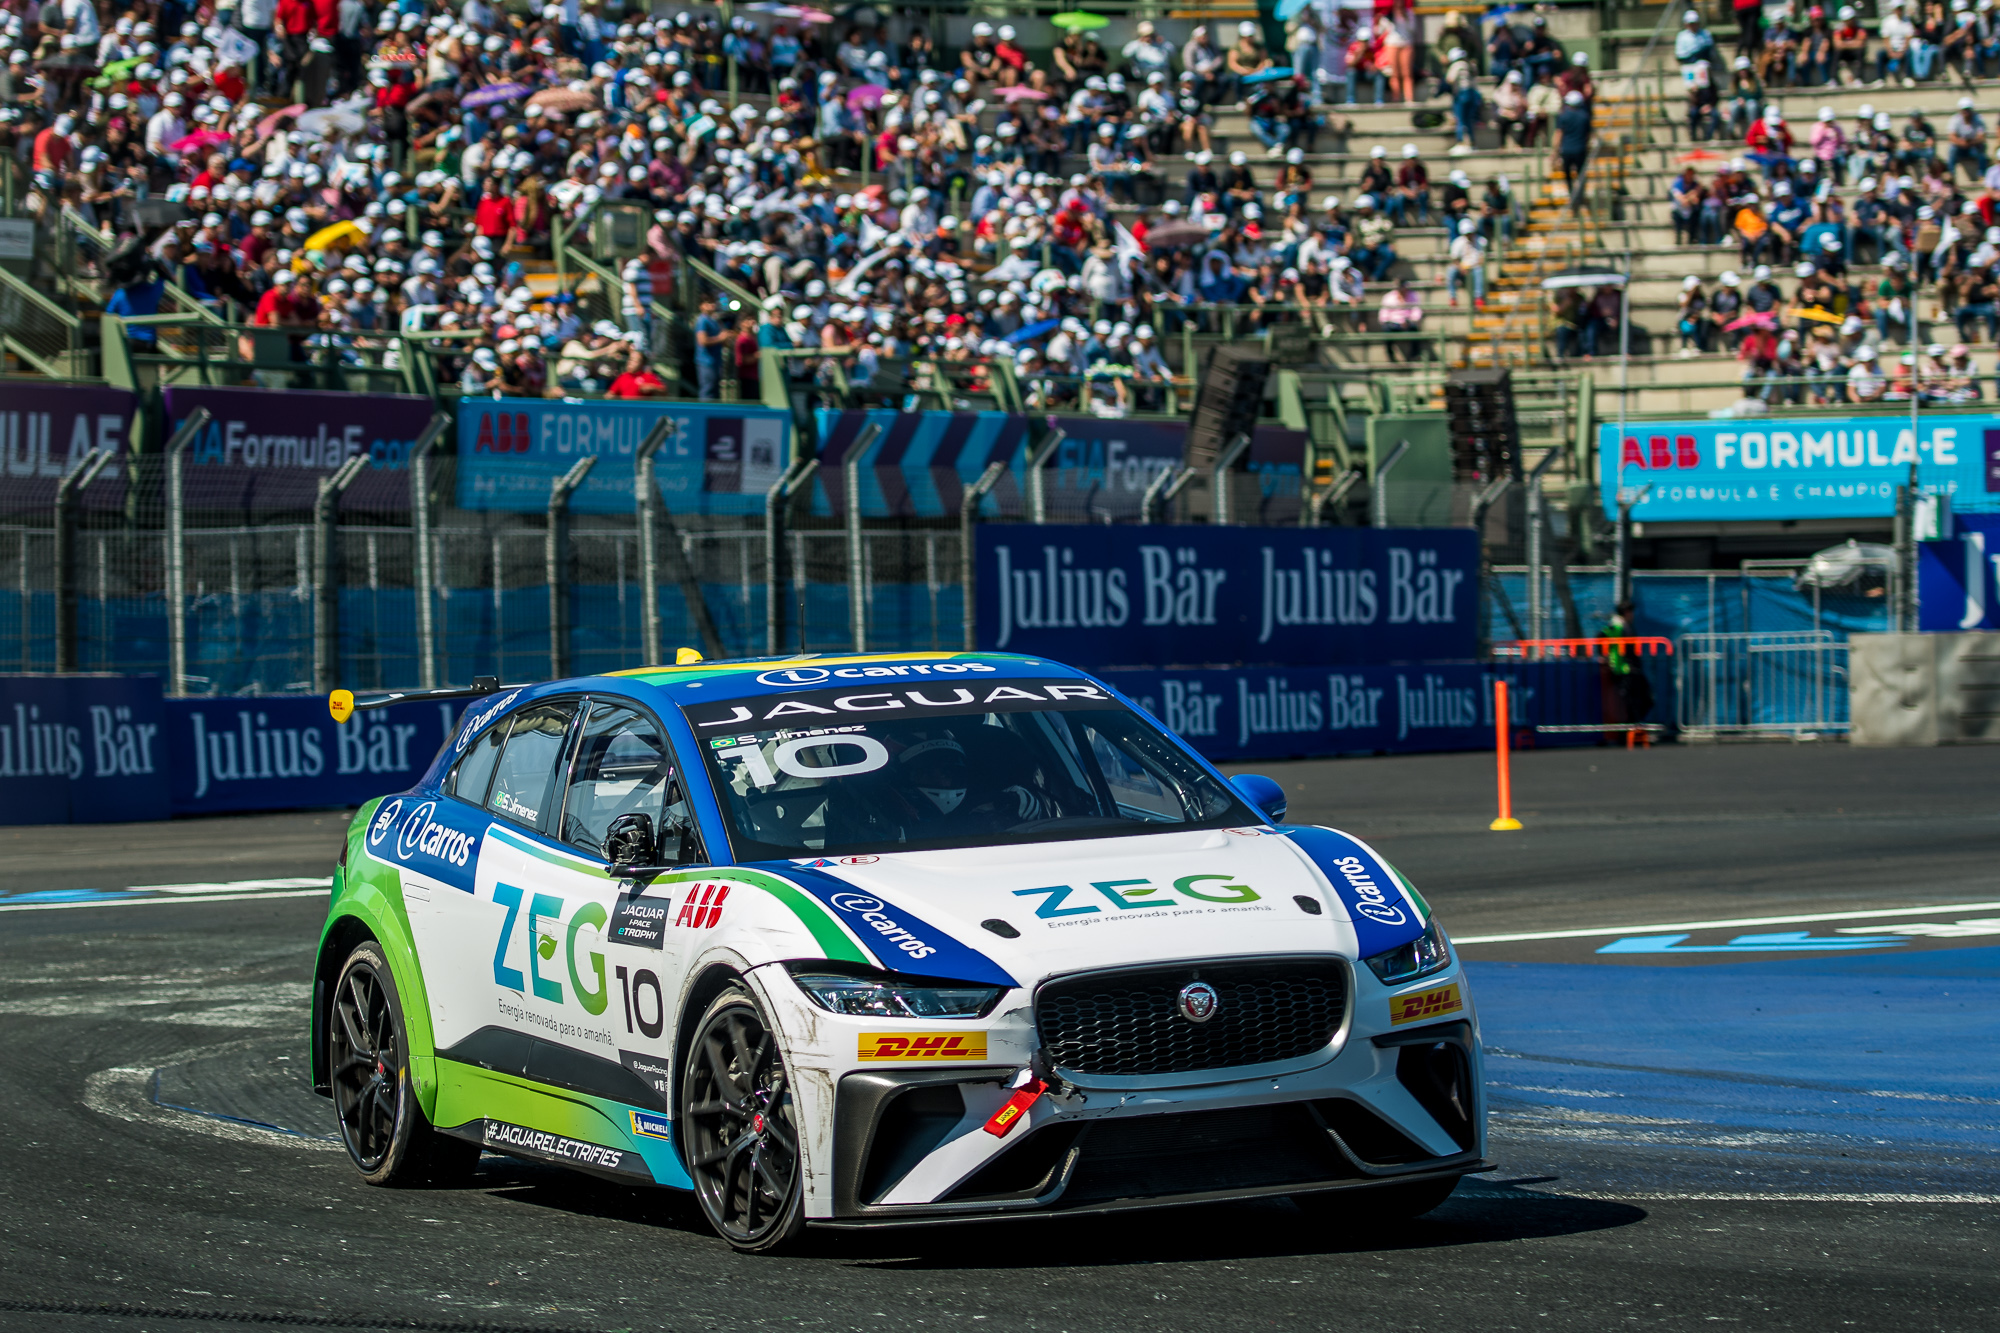 Photo of eTrophy – Sergio Jimenez sobe no pódio do Jaguar I-PACE eTROPHY e embola disputa pela liderança do campeonato